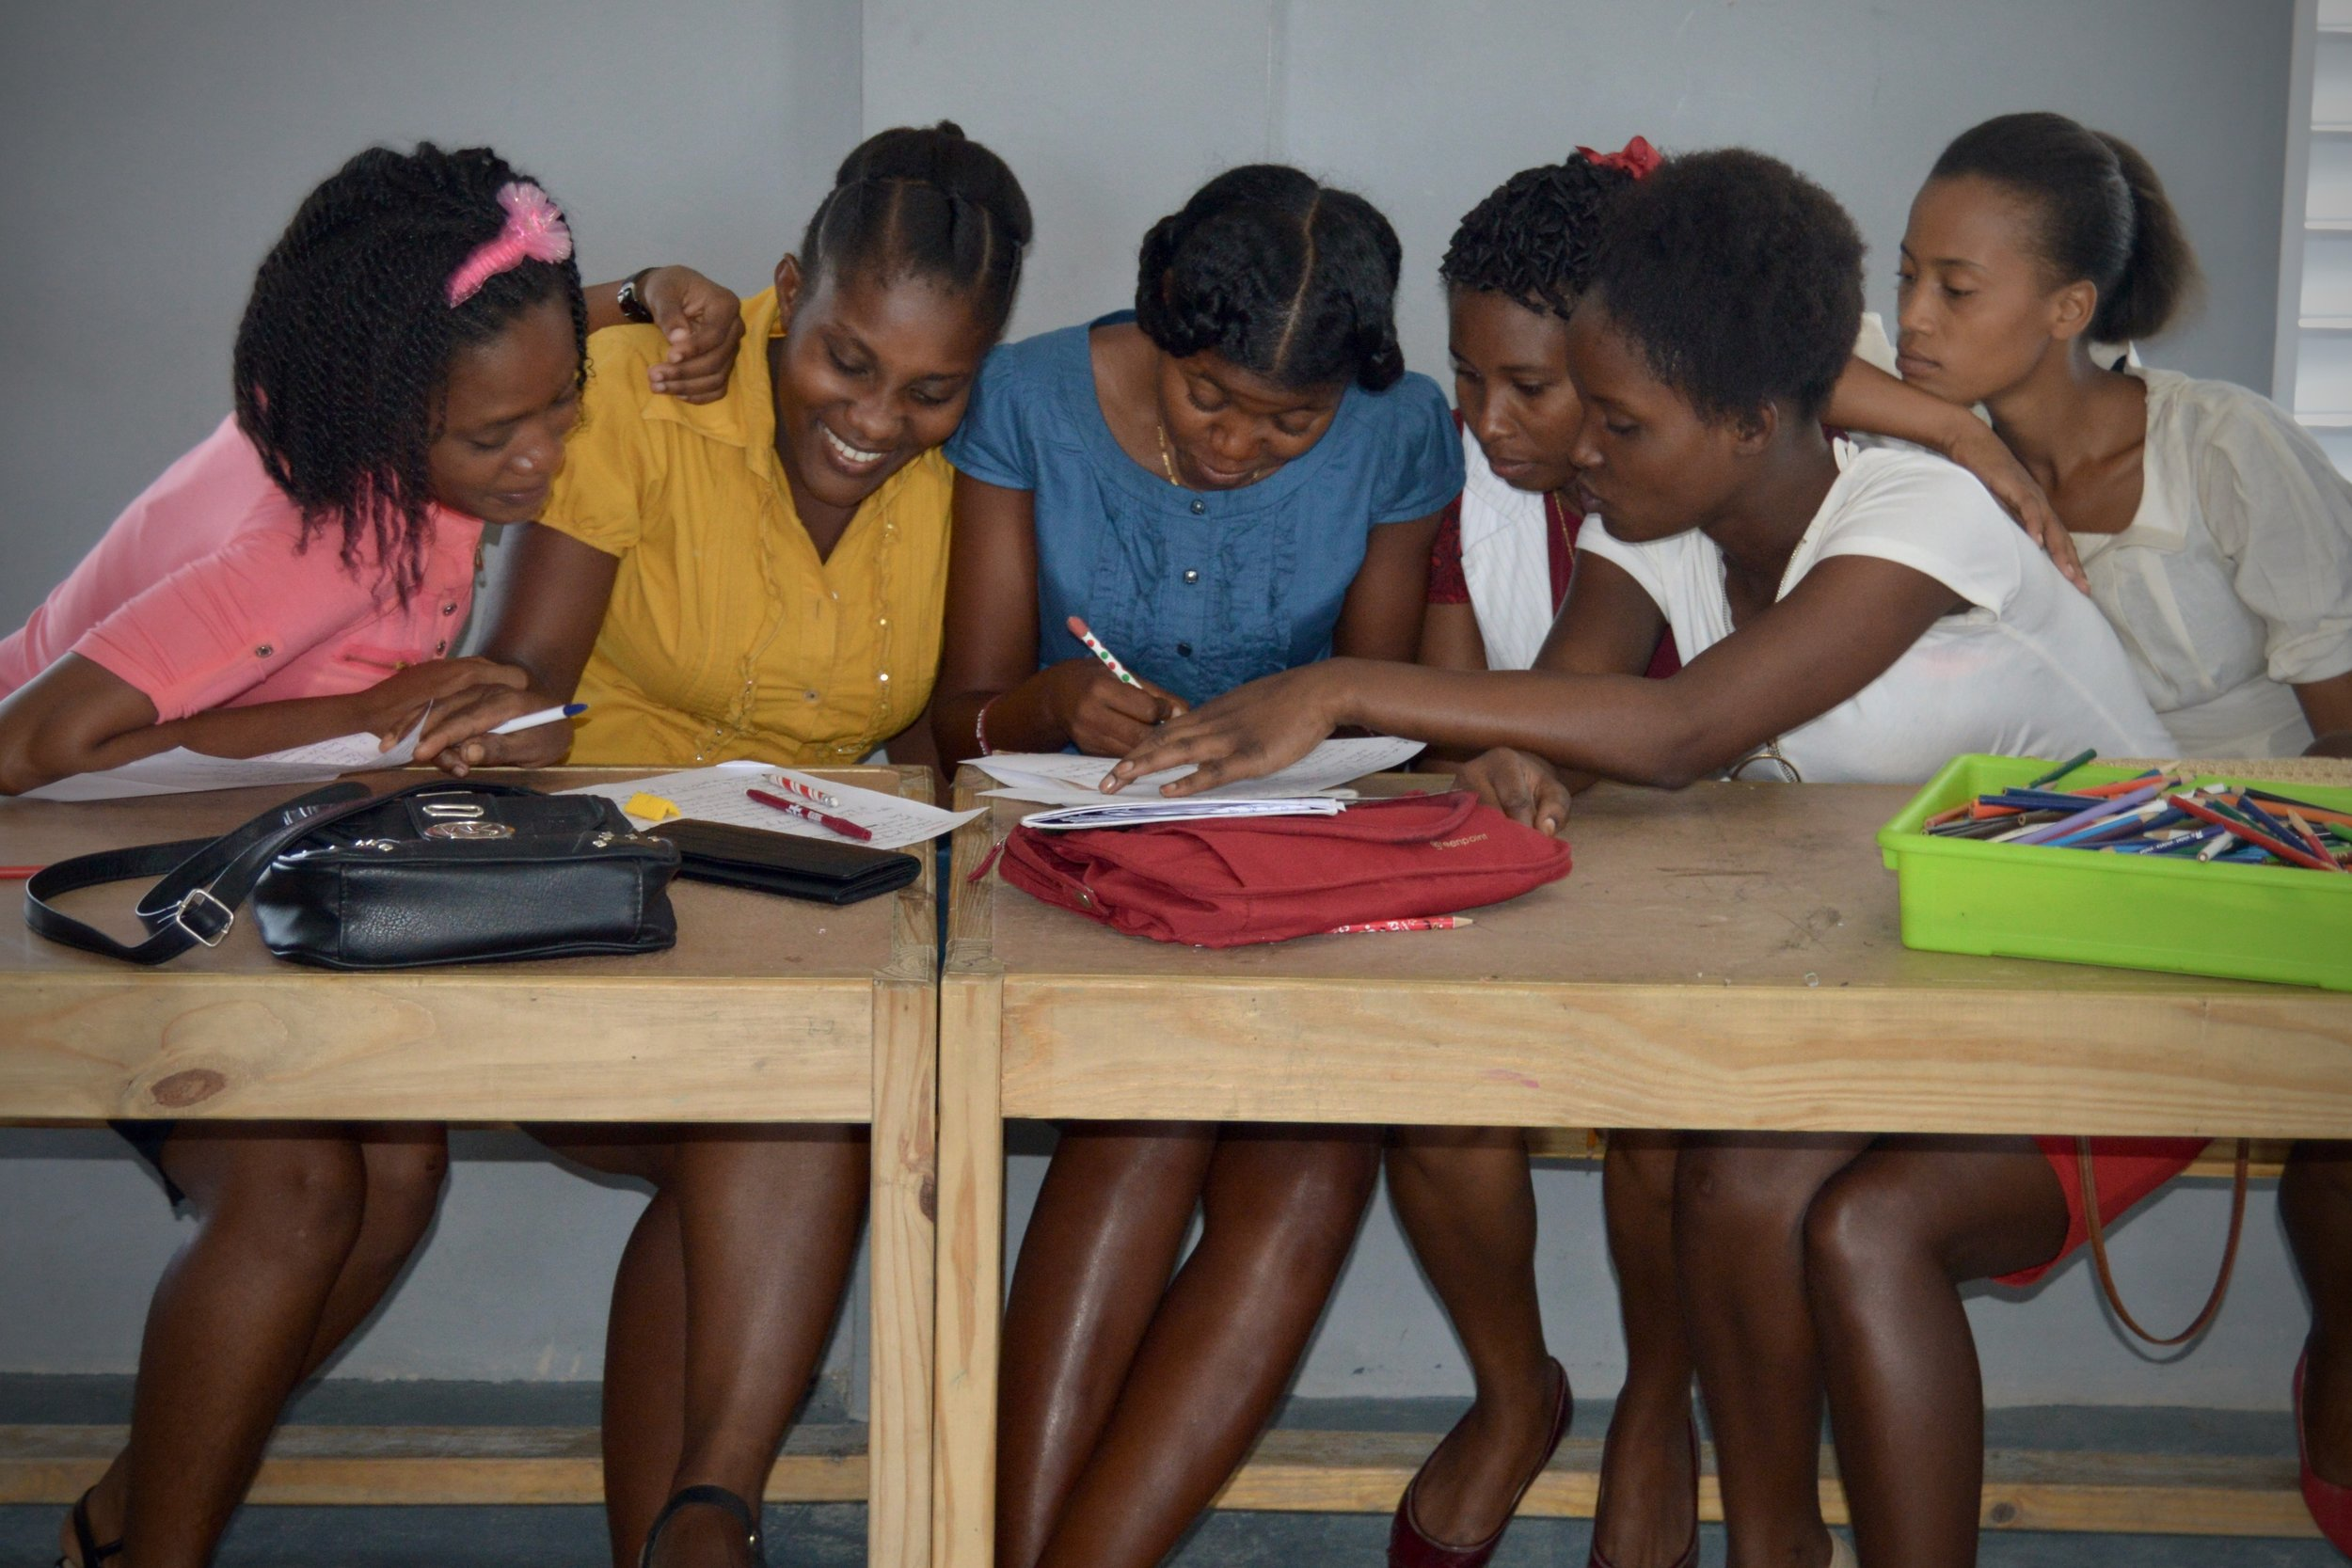 Staff Training - Our Haitian staff received 98 hours of collective training on leadership, personal health, team-building, and job skills development. We are equipping them to be the light of the world to their community!